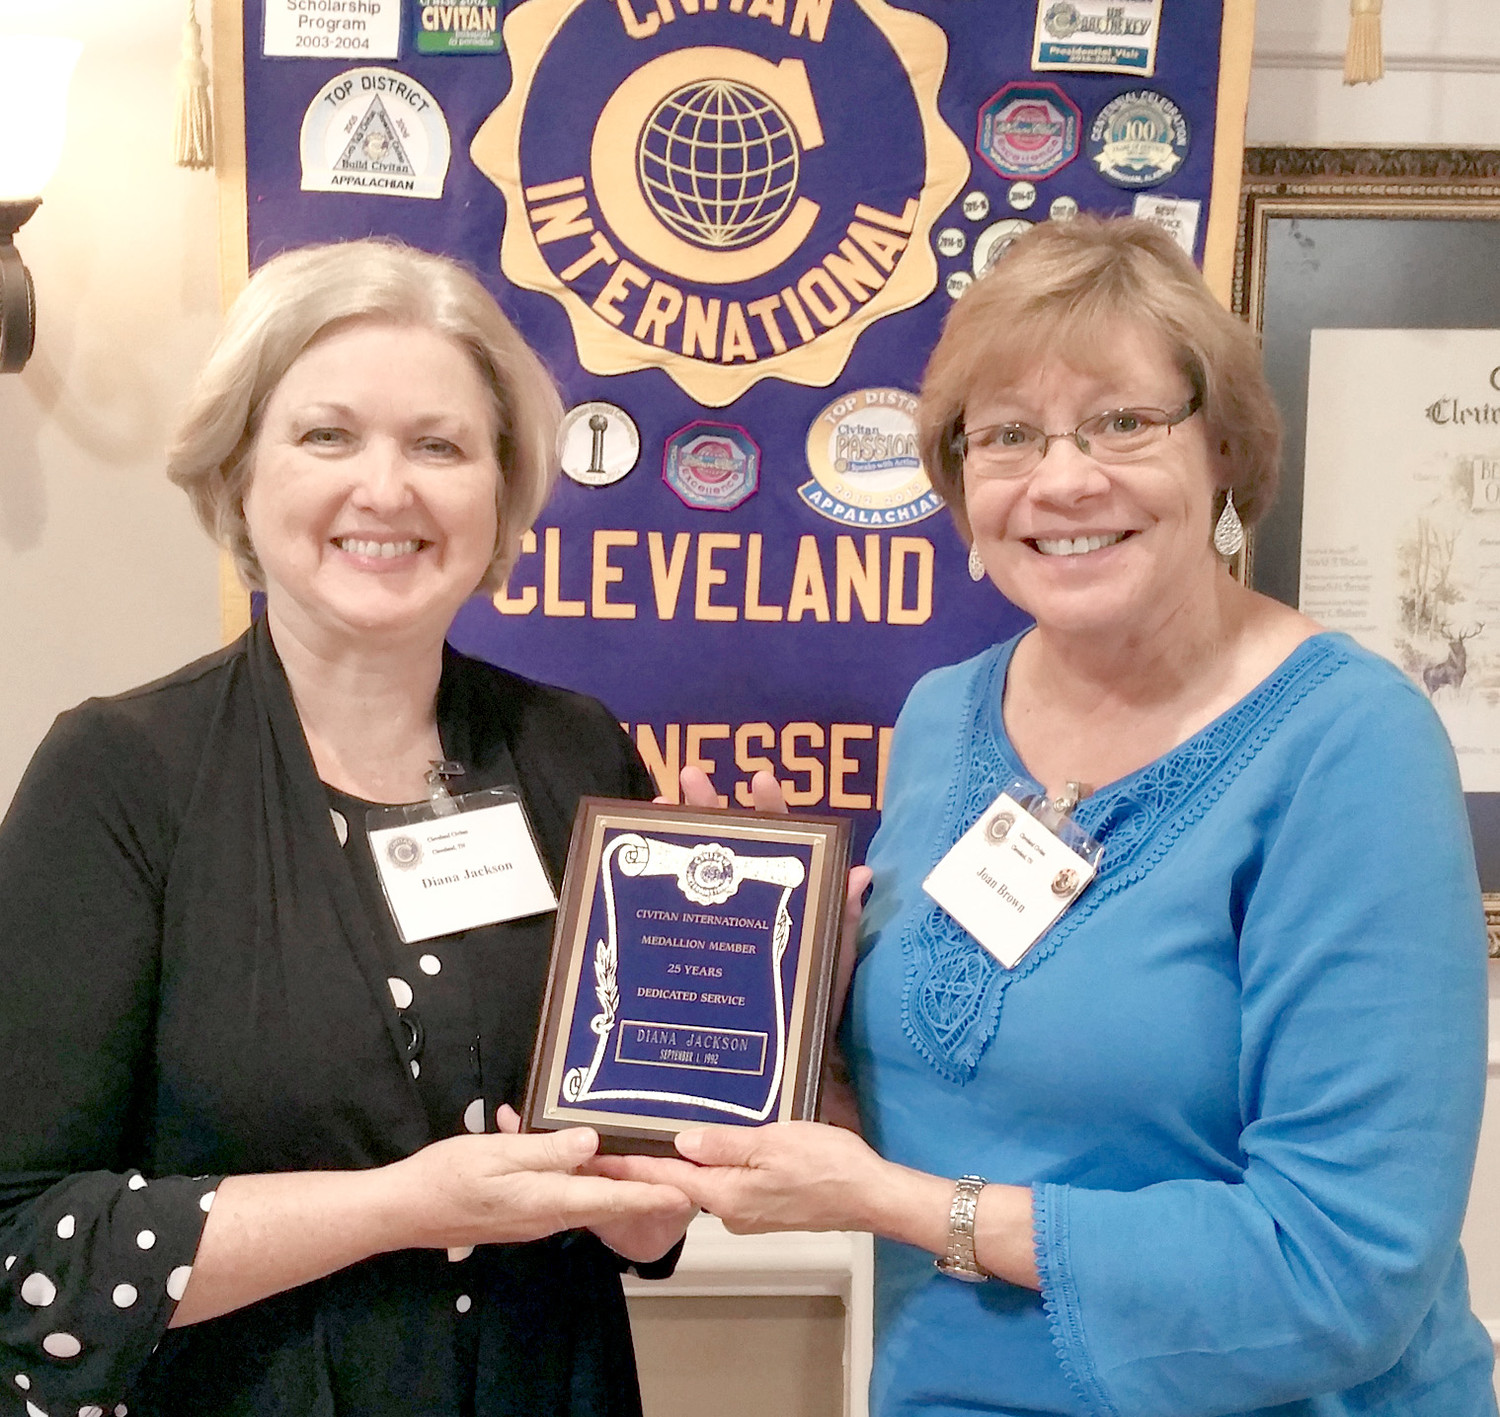 Diana Jackson recently receive a plaque  from Civitan International honoring her for 25 years of dedicated service to Civitan. She is currently past president of the local club.  Making the presentation is Joan Brown, Cleveland Civitan president.